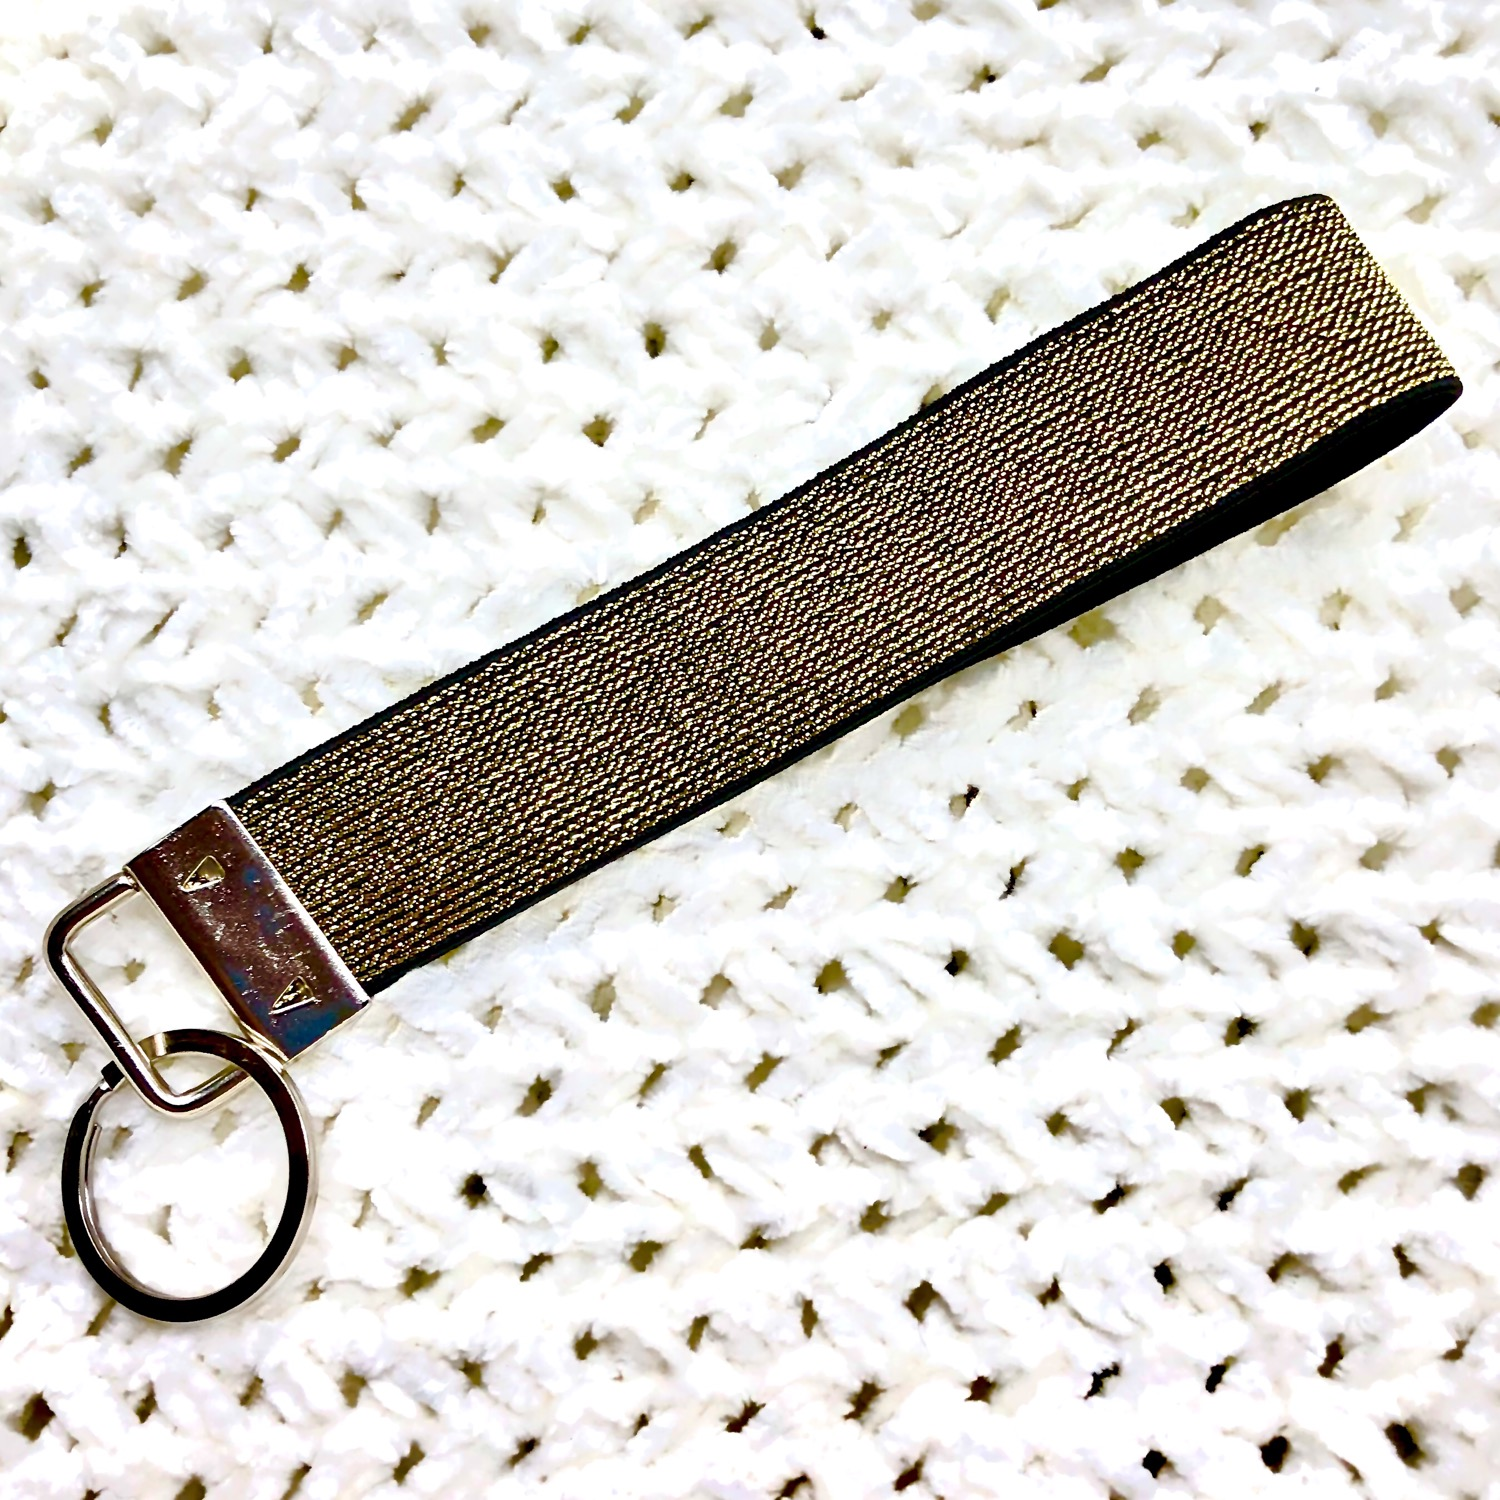 Gold & Black Keychain Fob